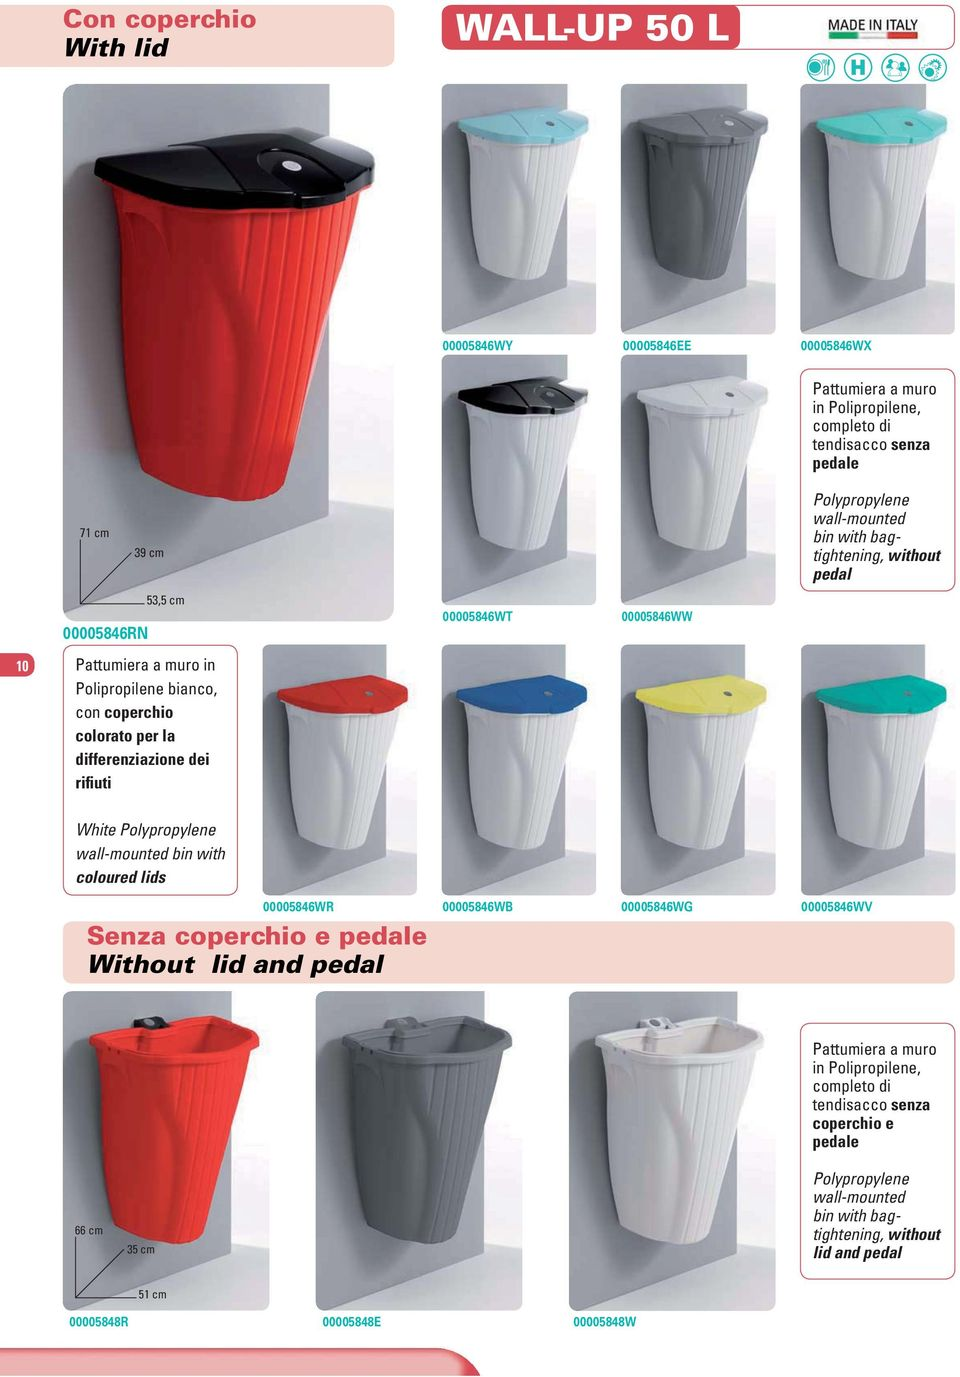 differenziazione dei rifiuti White Polypropylene wall-mounted bin with coloured lids Senza coperchio e pedale Without lid and pedal 00005846WR 00005846WB 00005846WG 00005846WV